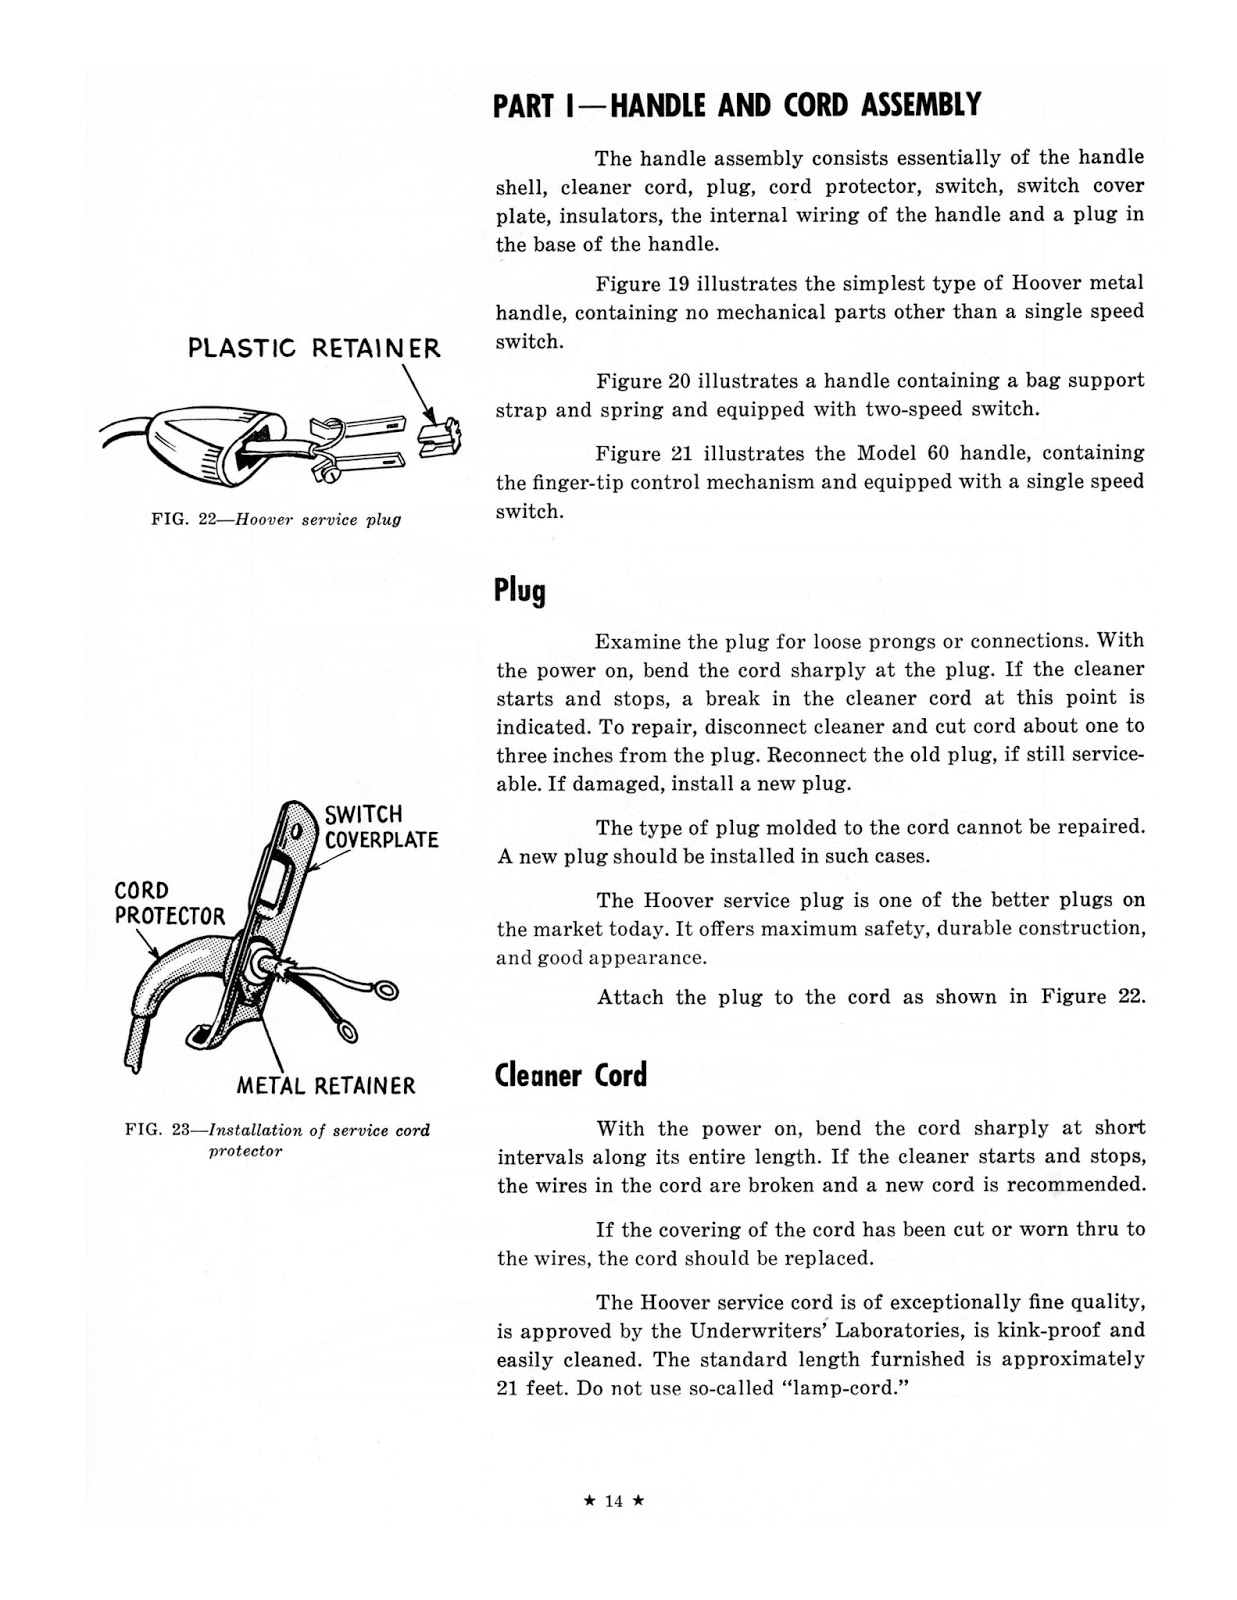 1957 Hoover Us Service Manual Vacuum Wiring Whilst It Is An American Document The Machines Were Sold In Uk Under Different Names And Information Invaluable For Older Vacuums